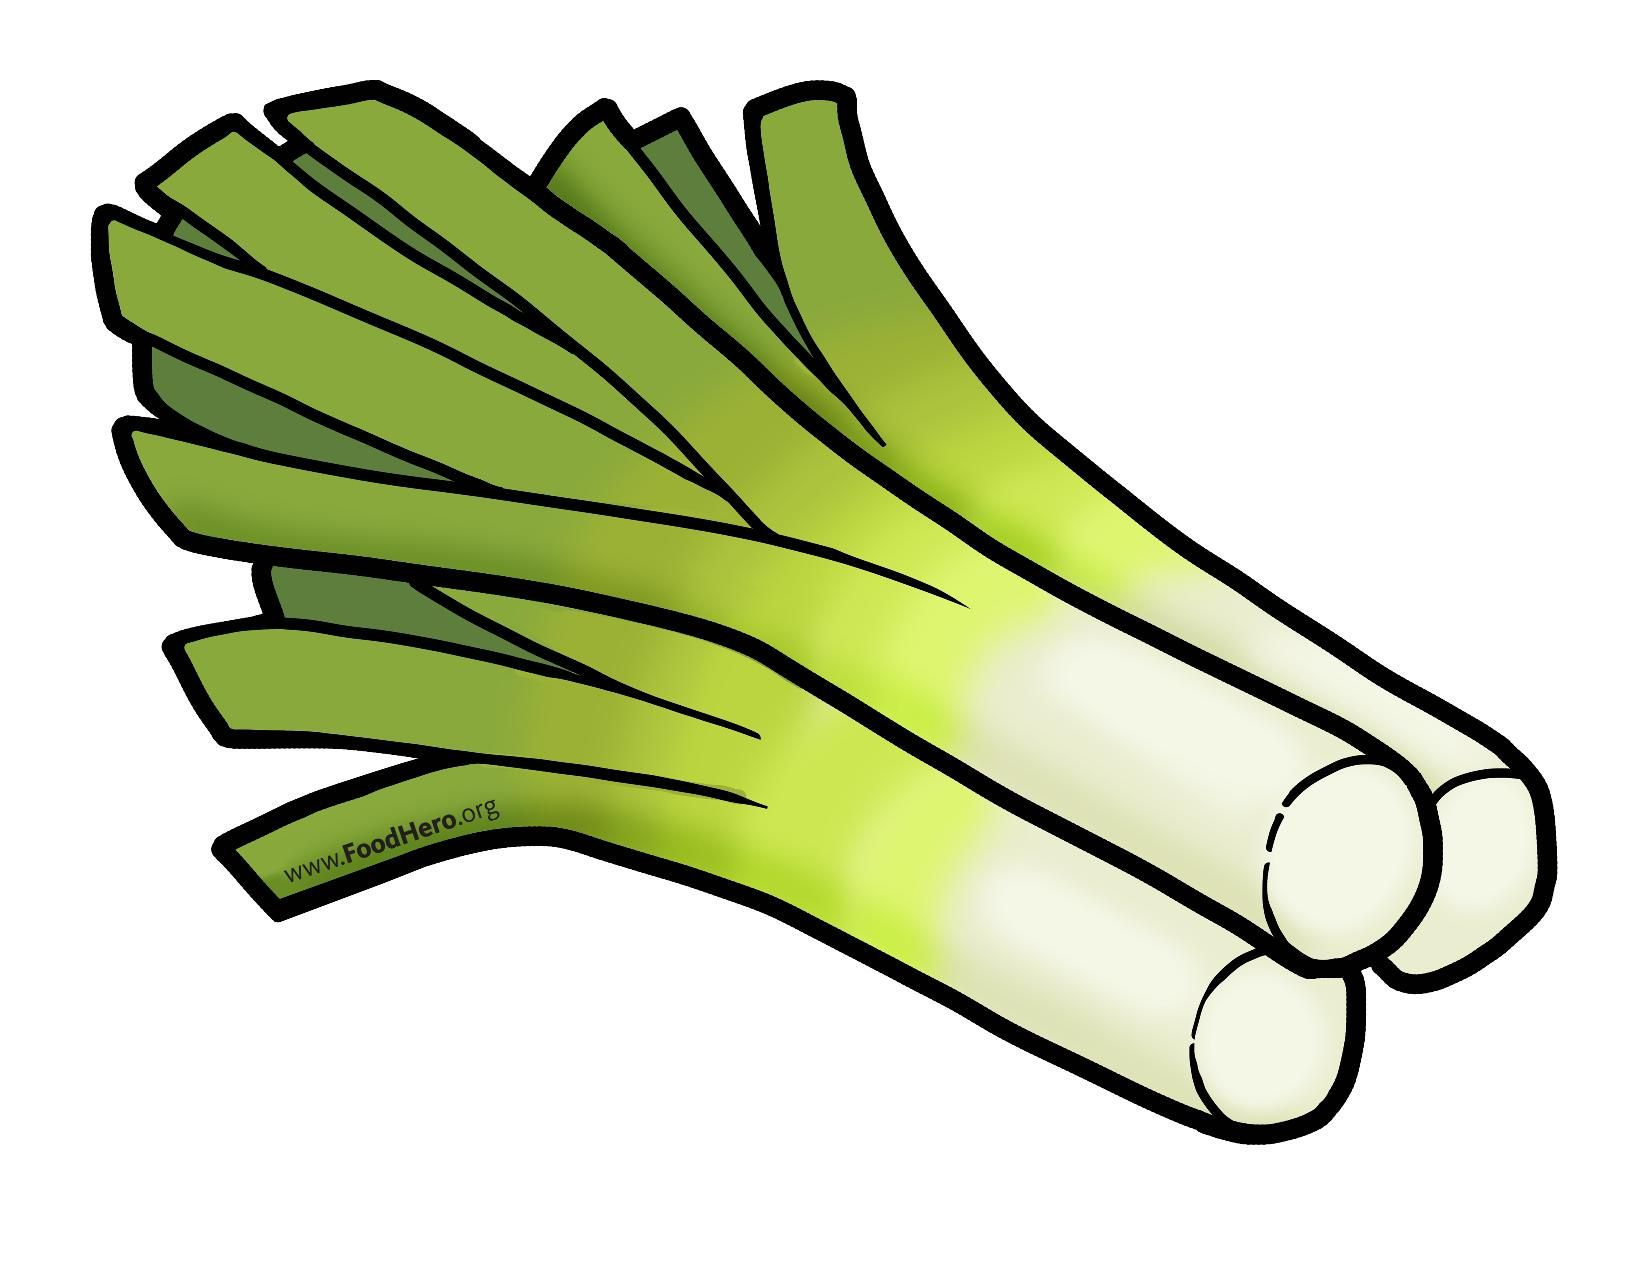 Leeks. Colored illustration in